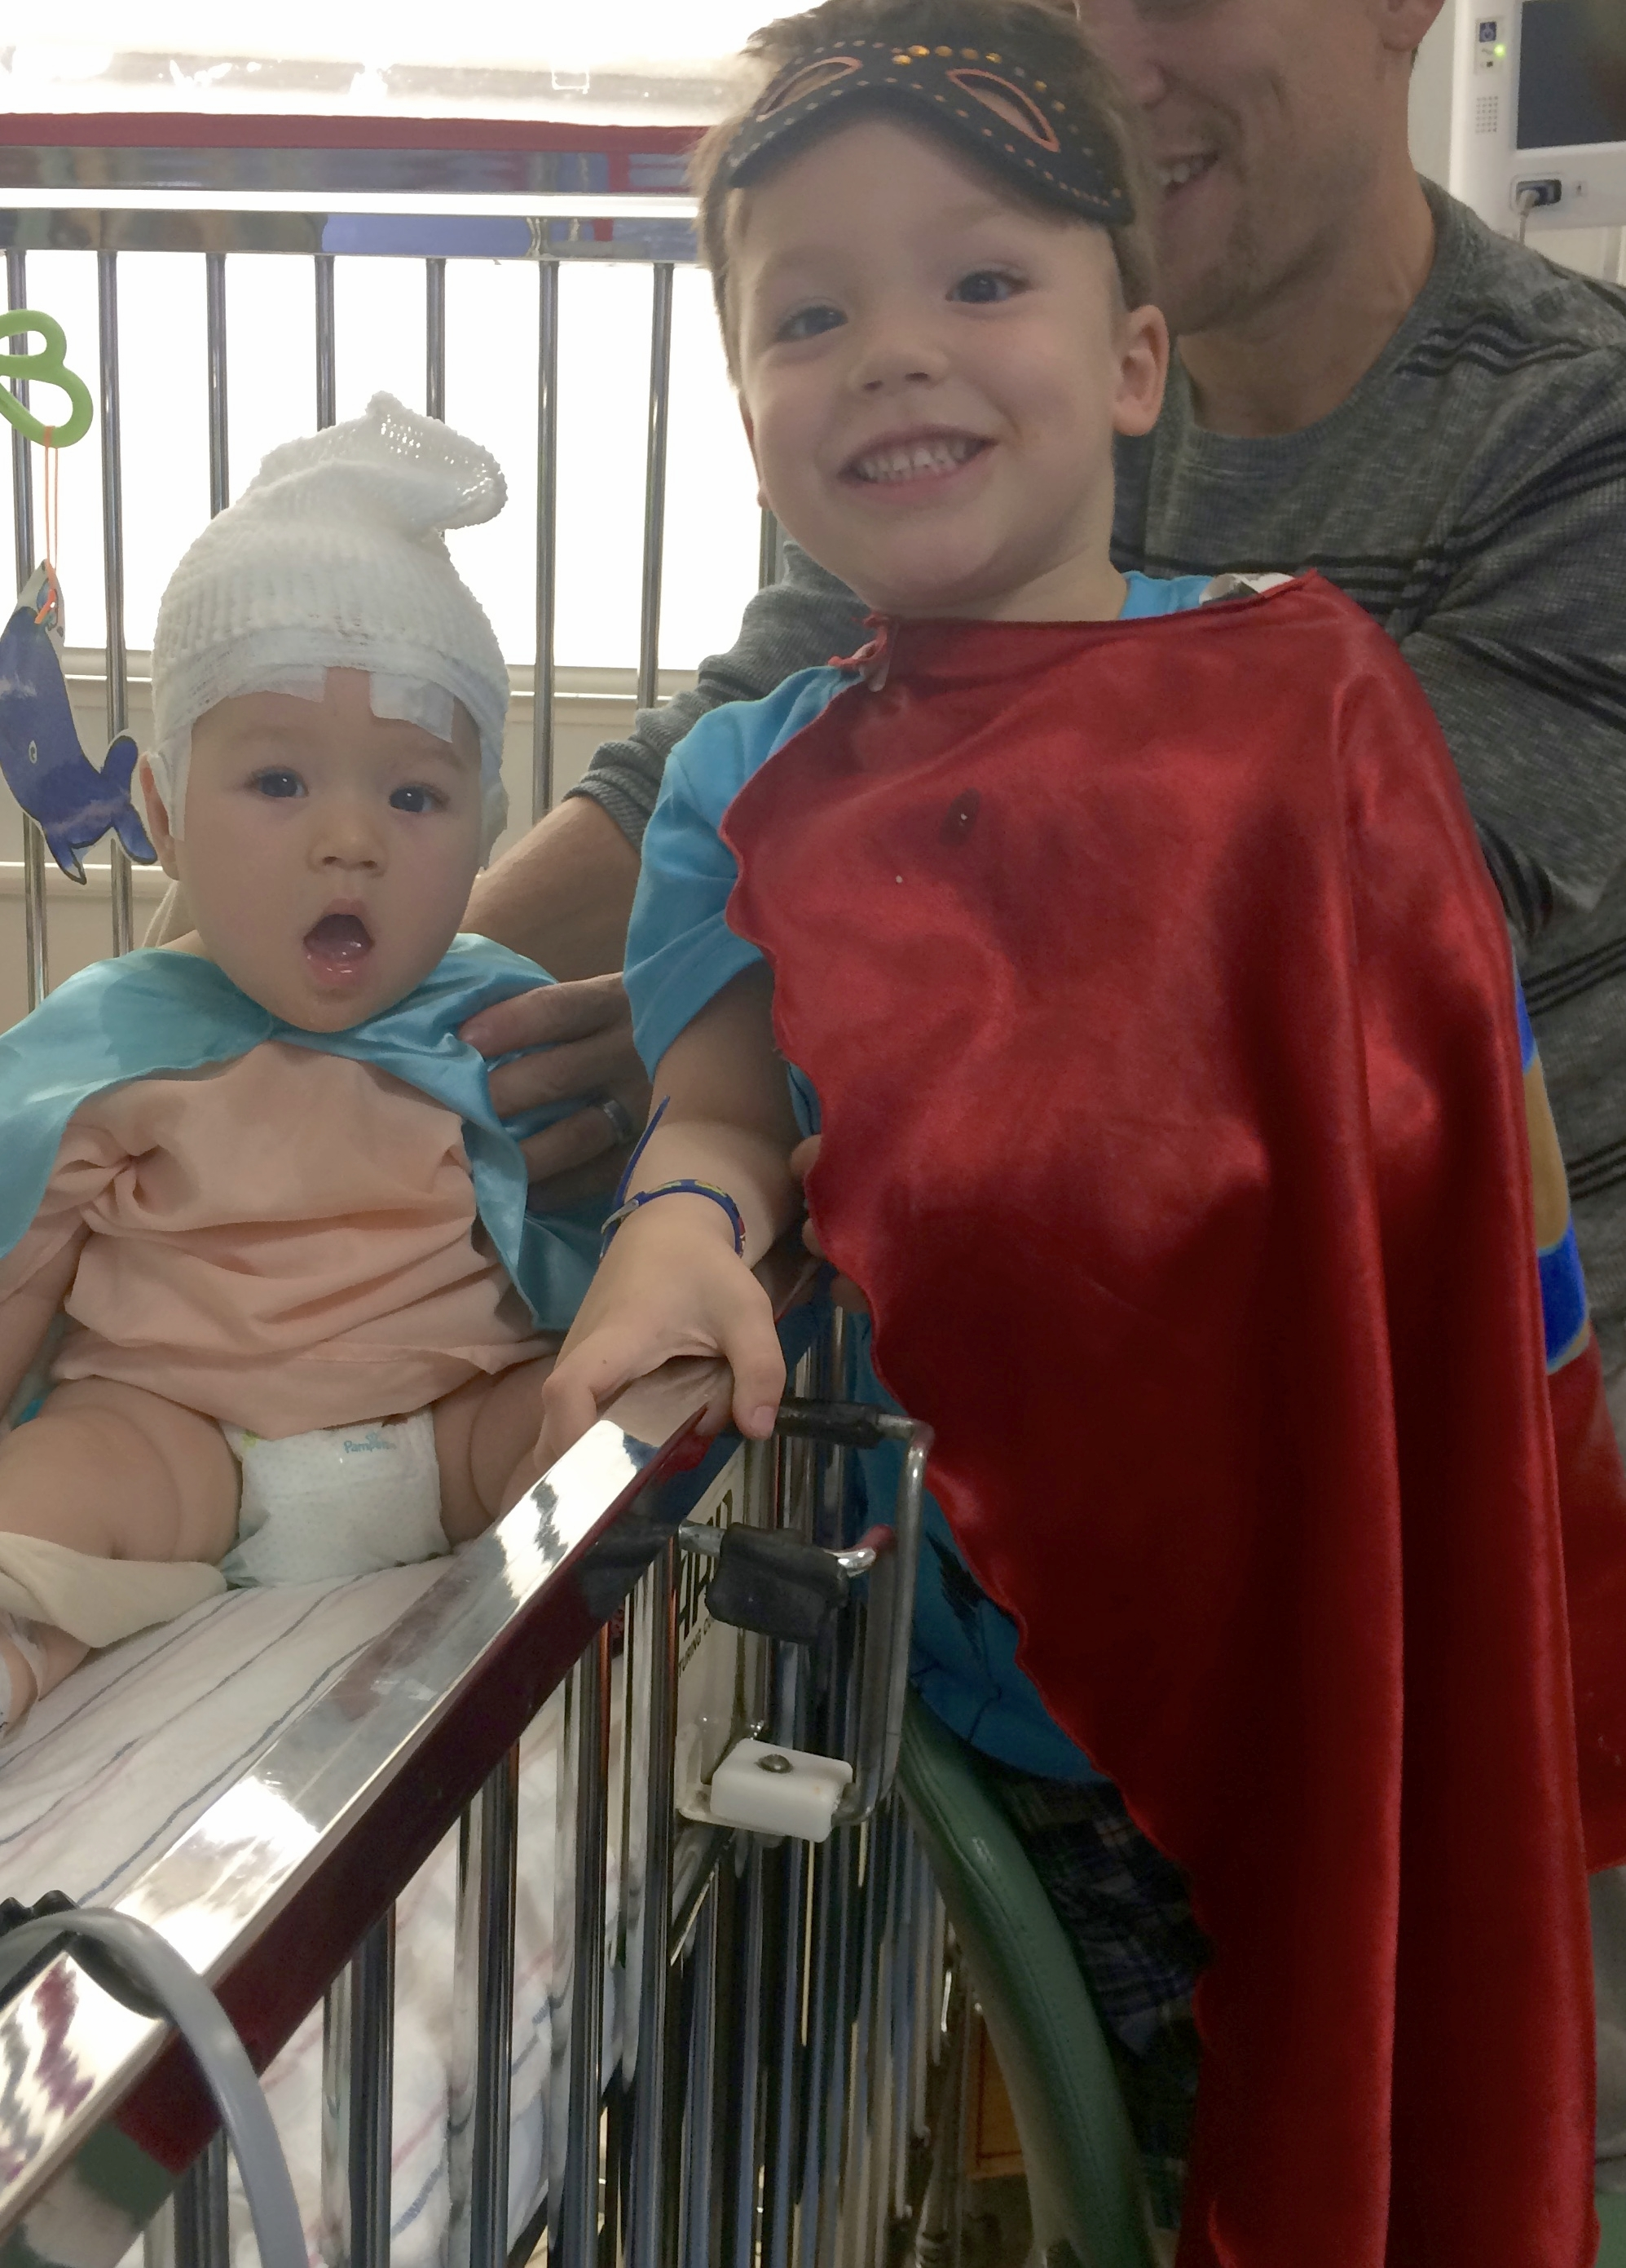 Superhero visit during Adelaide's first inpatient EEG, May 2016